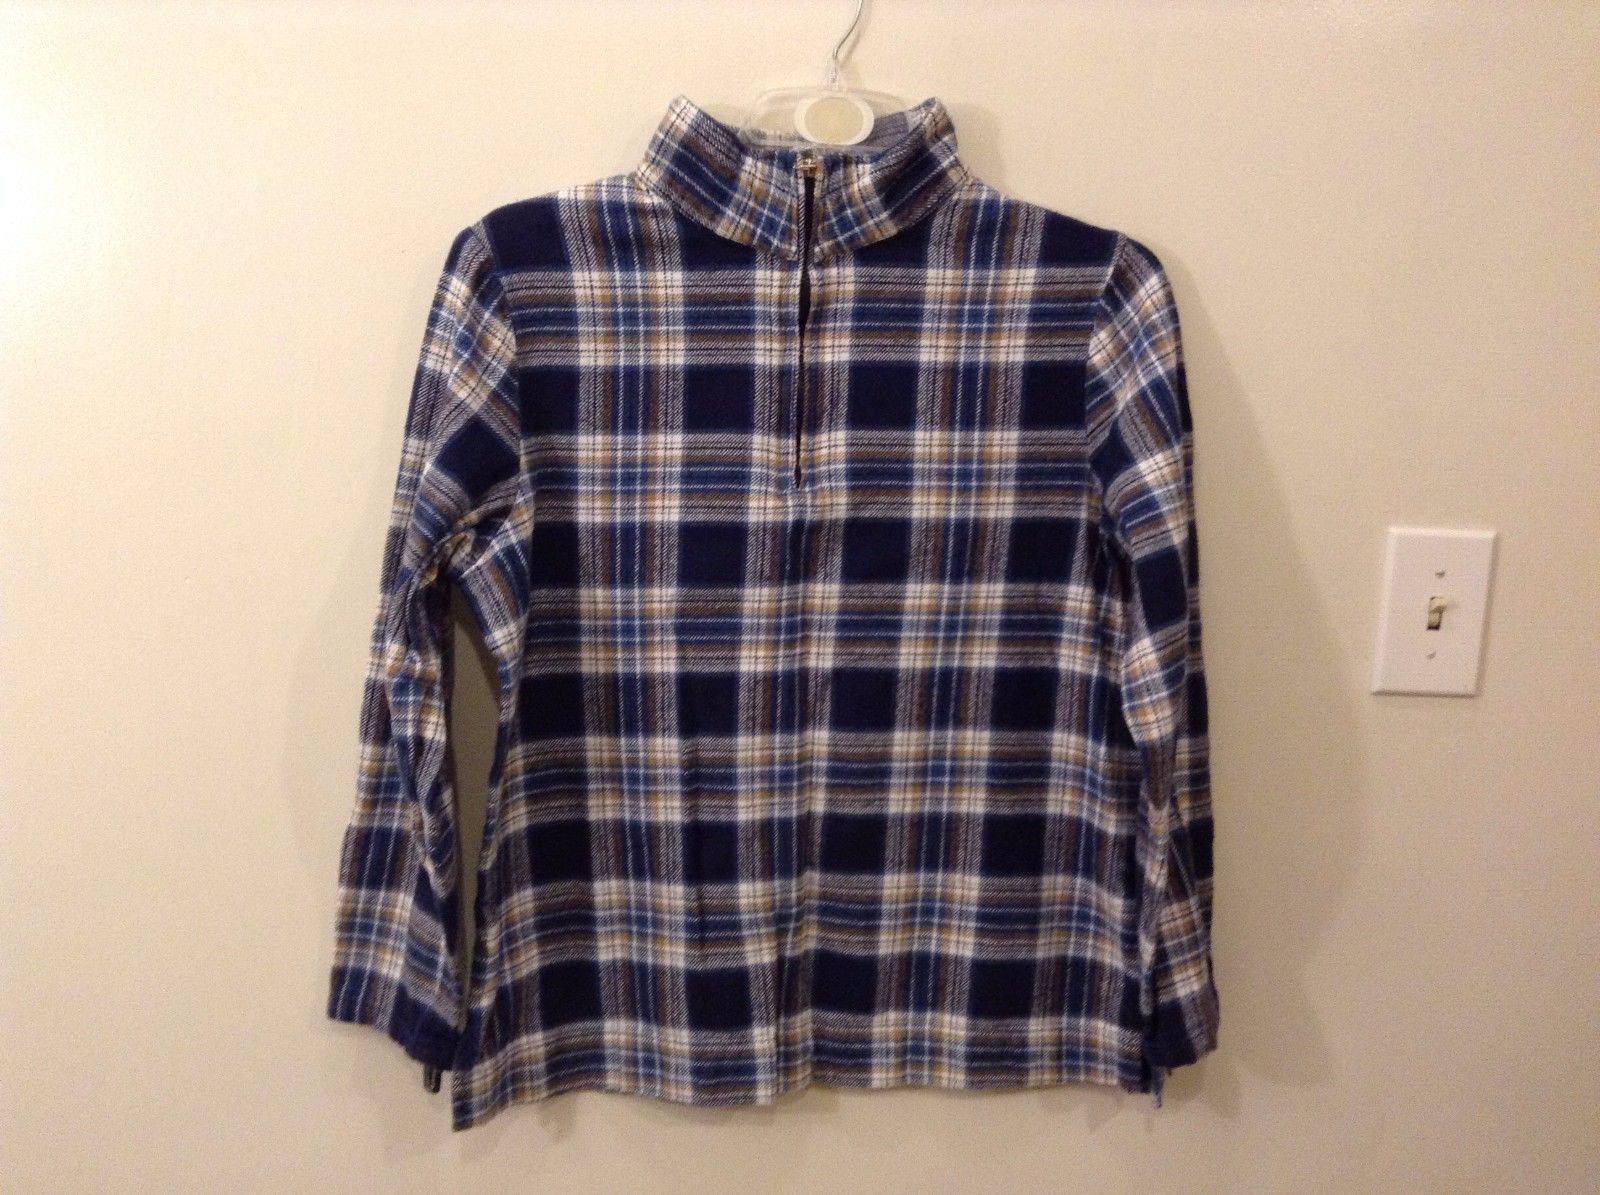 Denim & Co. 100% Cotton XL Plaid Pullover Jacket Zip Up Neck Navy Blue White